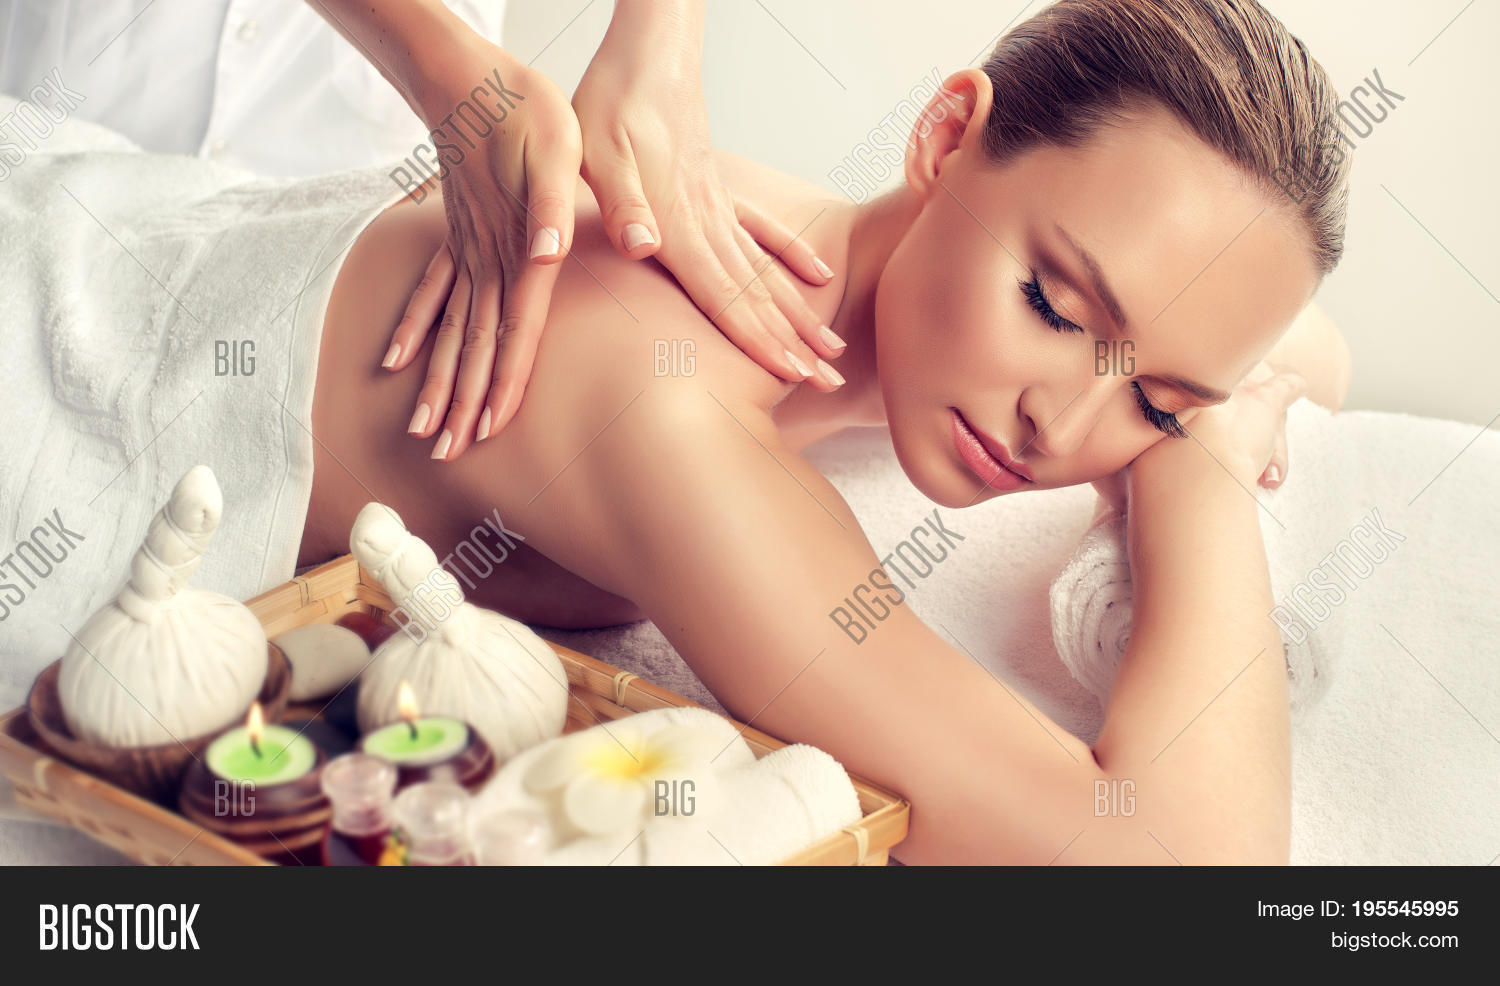 Salon Massage Body Body Massage Body Care Spa Image Photo Free Trial Bigstock